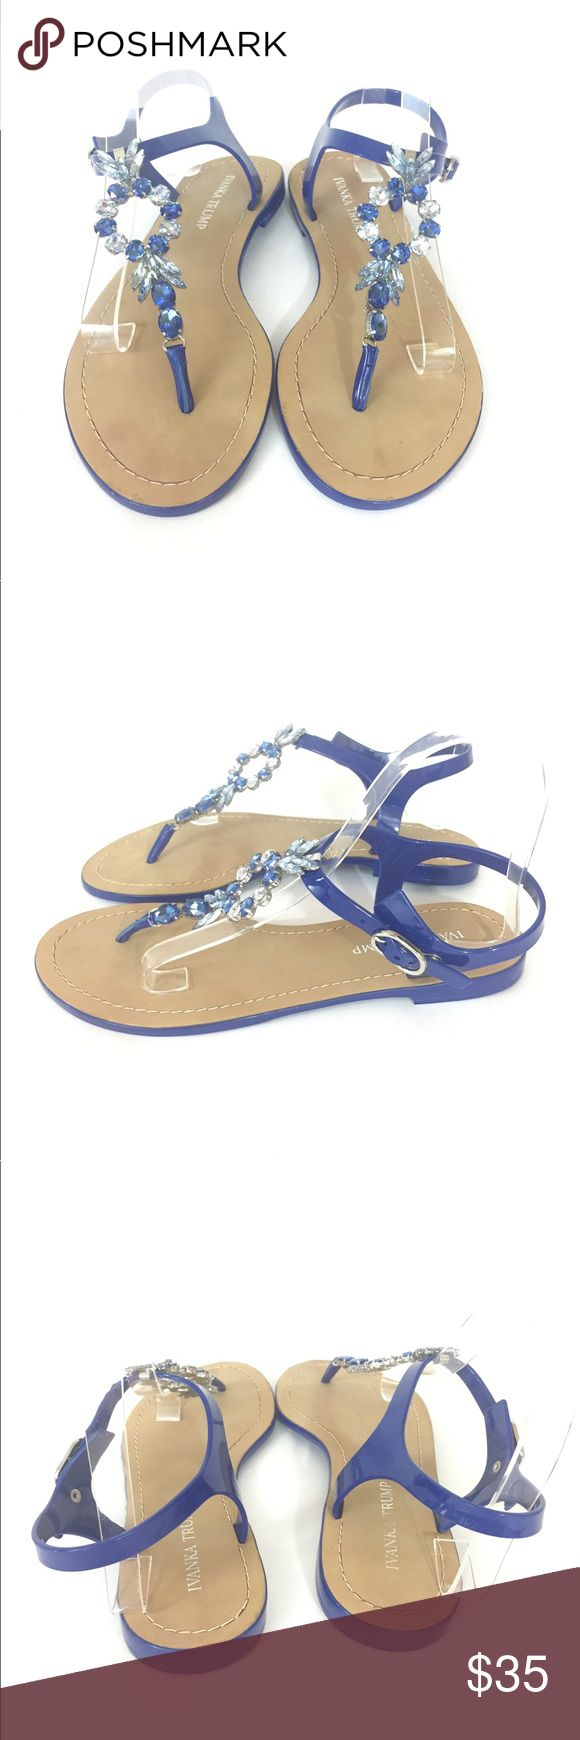 Ivanka Trump Blue Gem Flat Sandals Size 8 For sale are these pretty Ivanka Trump Adoren sandals! Perfect to dress up or dress down!   Women's Size 8M  Great condition! Ivanka Trump Shoes Sandals